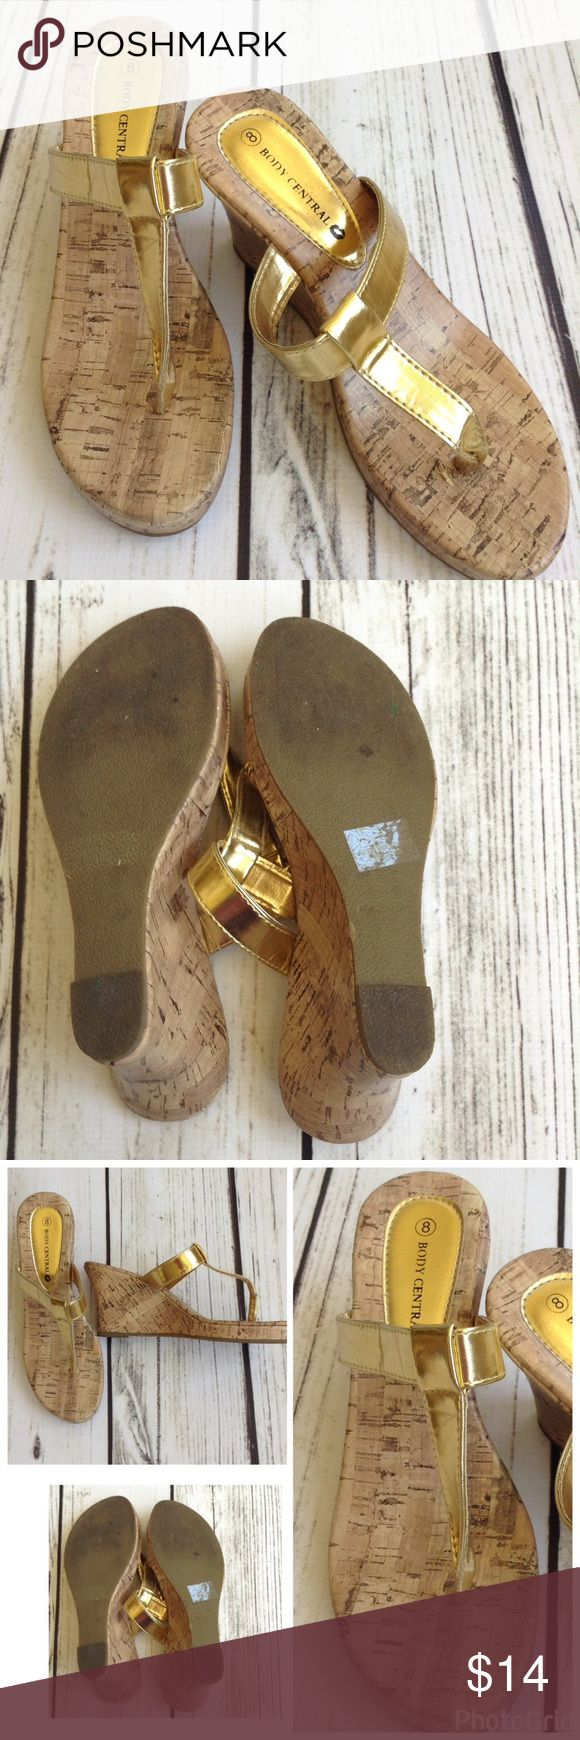 Gold sandals Pre loved adorable gold wedges. Such a great neutral shoe!  Brand: Body Central Size 8 Body Central Shoes Sandals